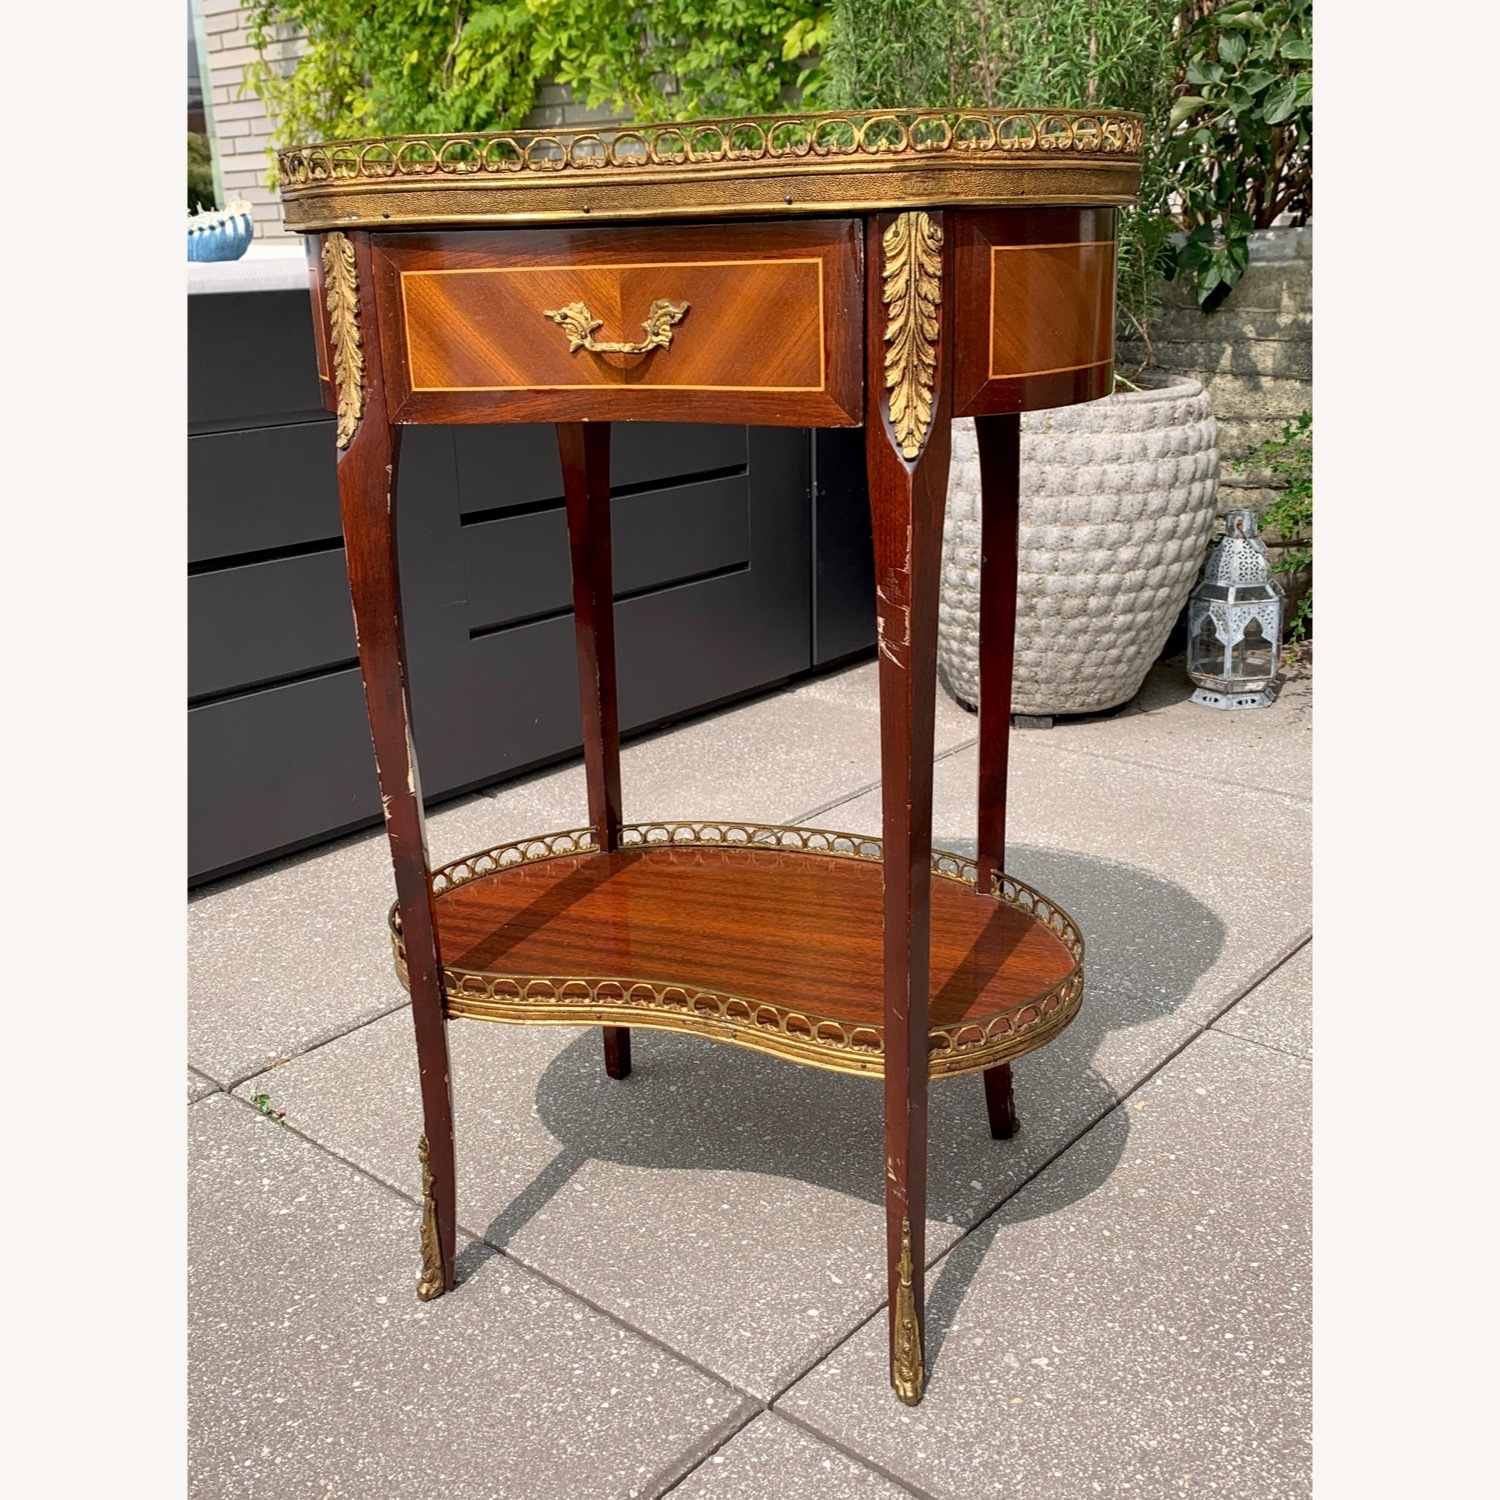 Pair of Kidney Accent Tables 50's Repro - image-1